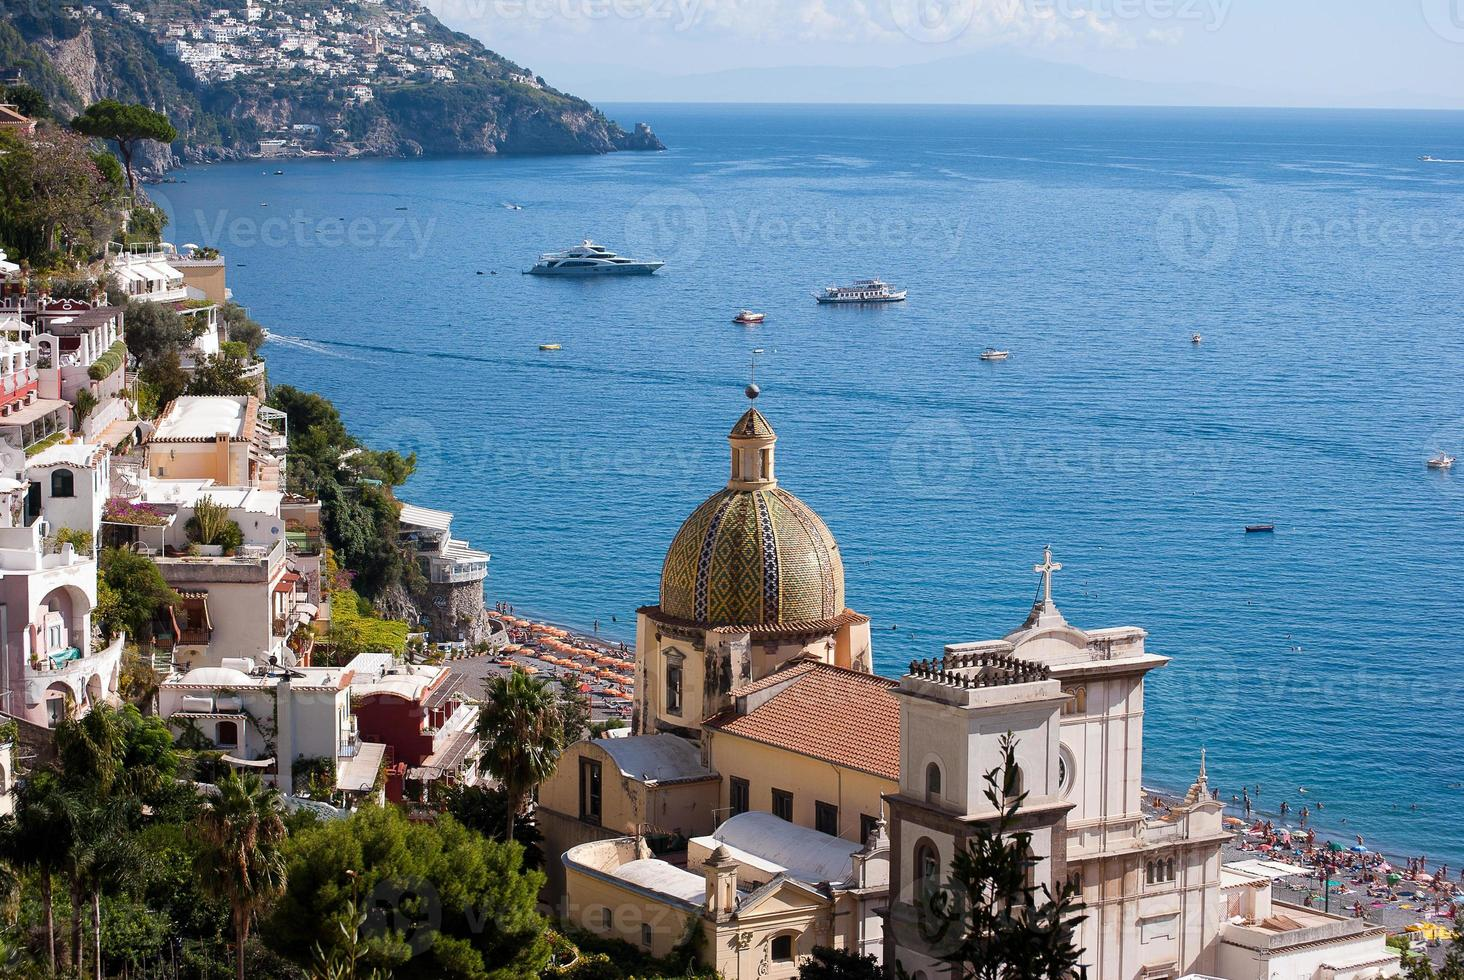 Positano, Amalfi Coast Italy photo